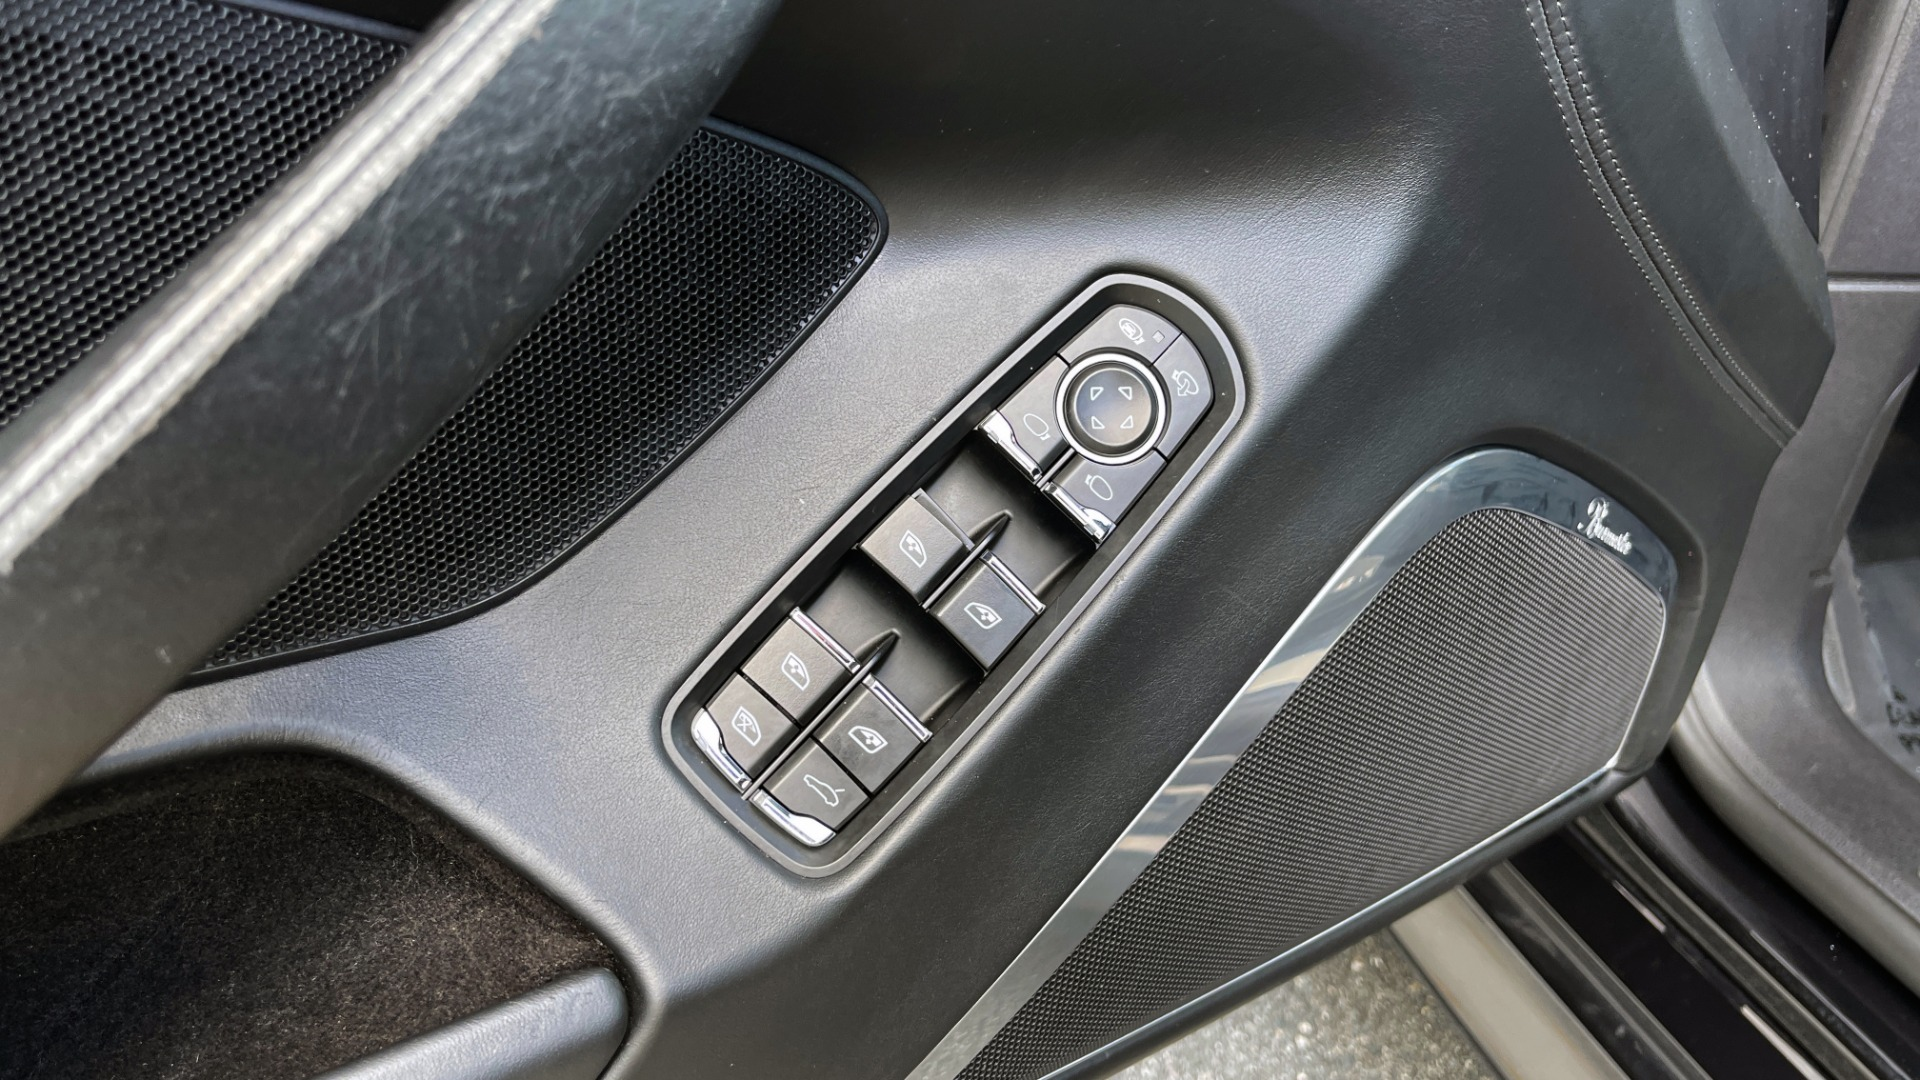 Used 2010 Porsche PANAMERA 4DR HB TURBO / SPORT CHRONO / BURMESTER / AUTO CLIMATE CONTROL for sale $40,995 at Formula Imports in Charlotte NC 28227 31